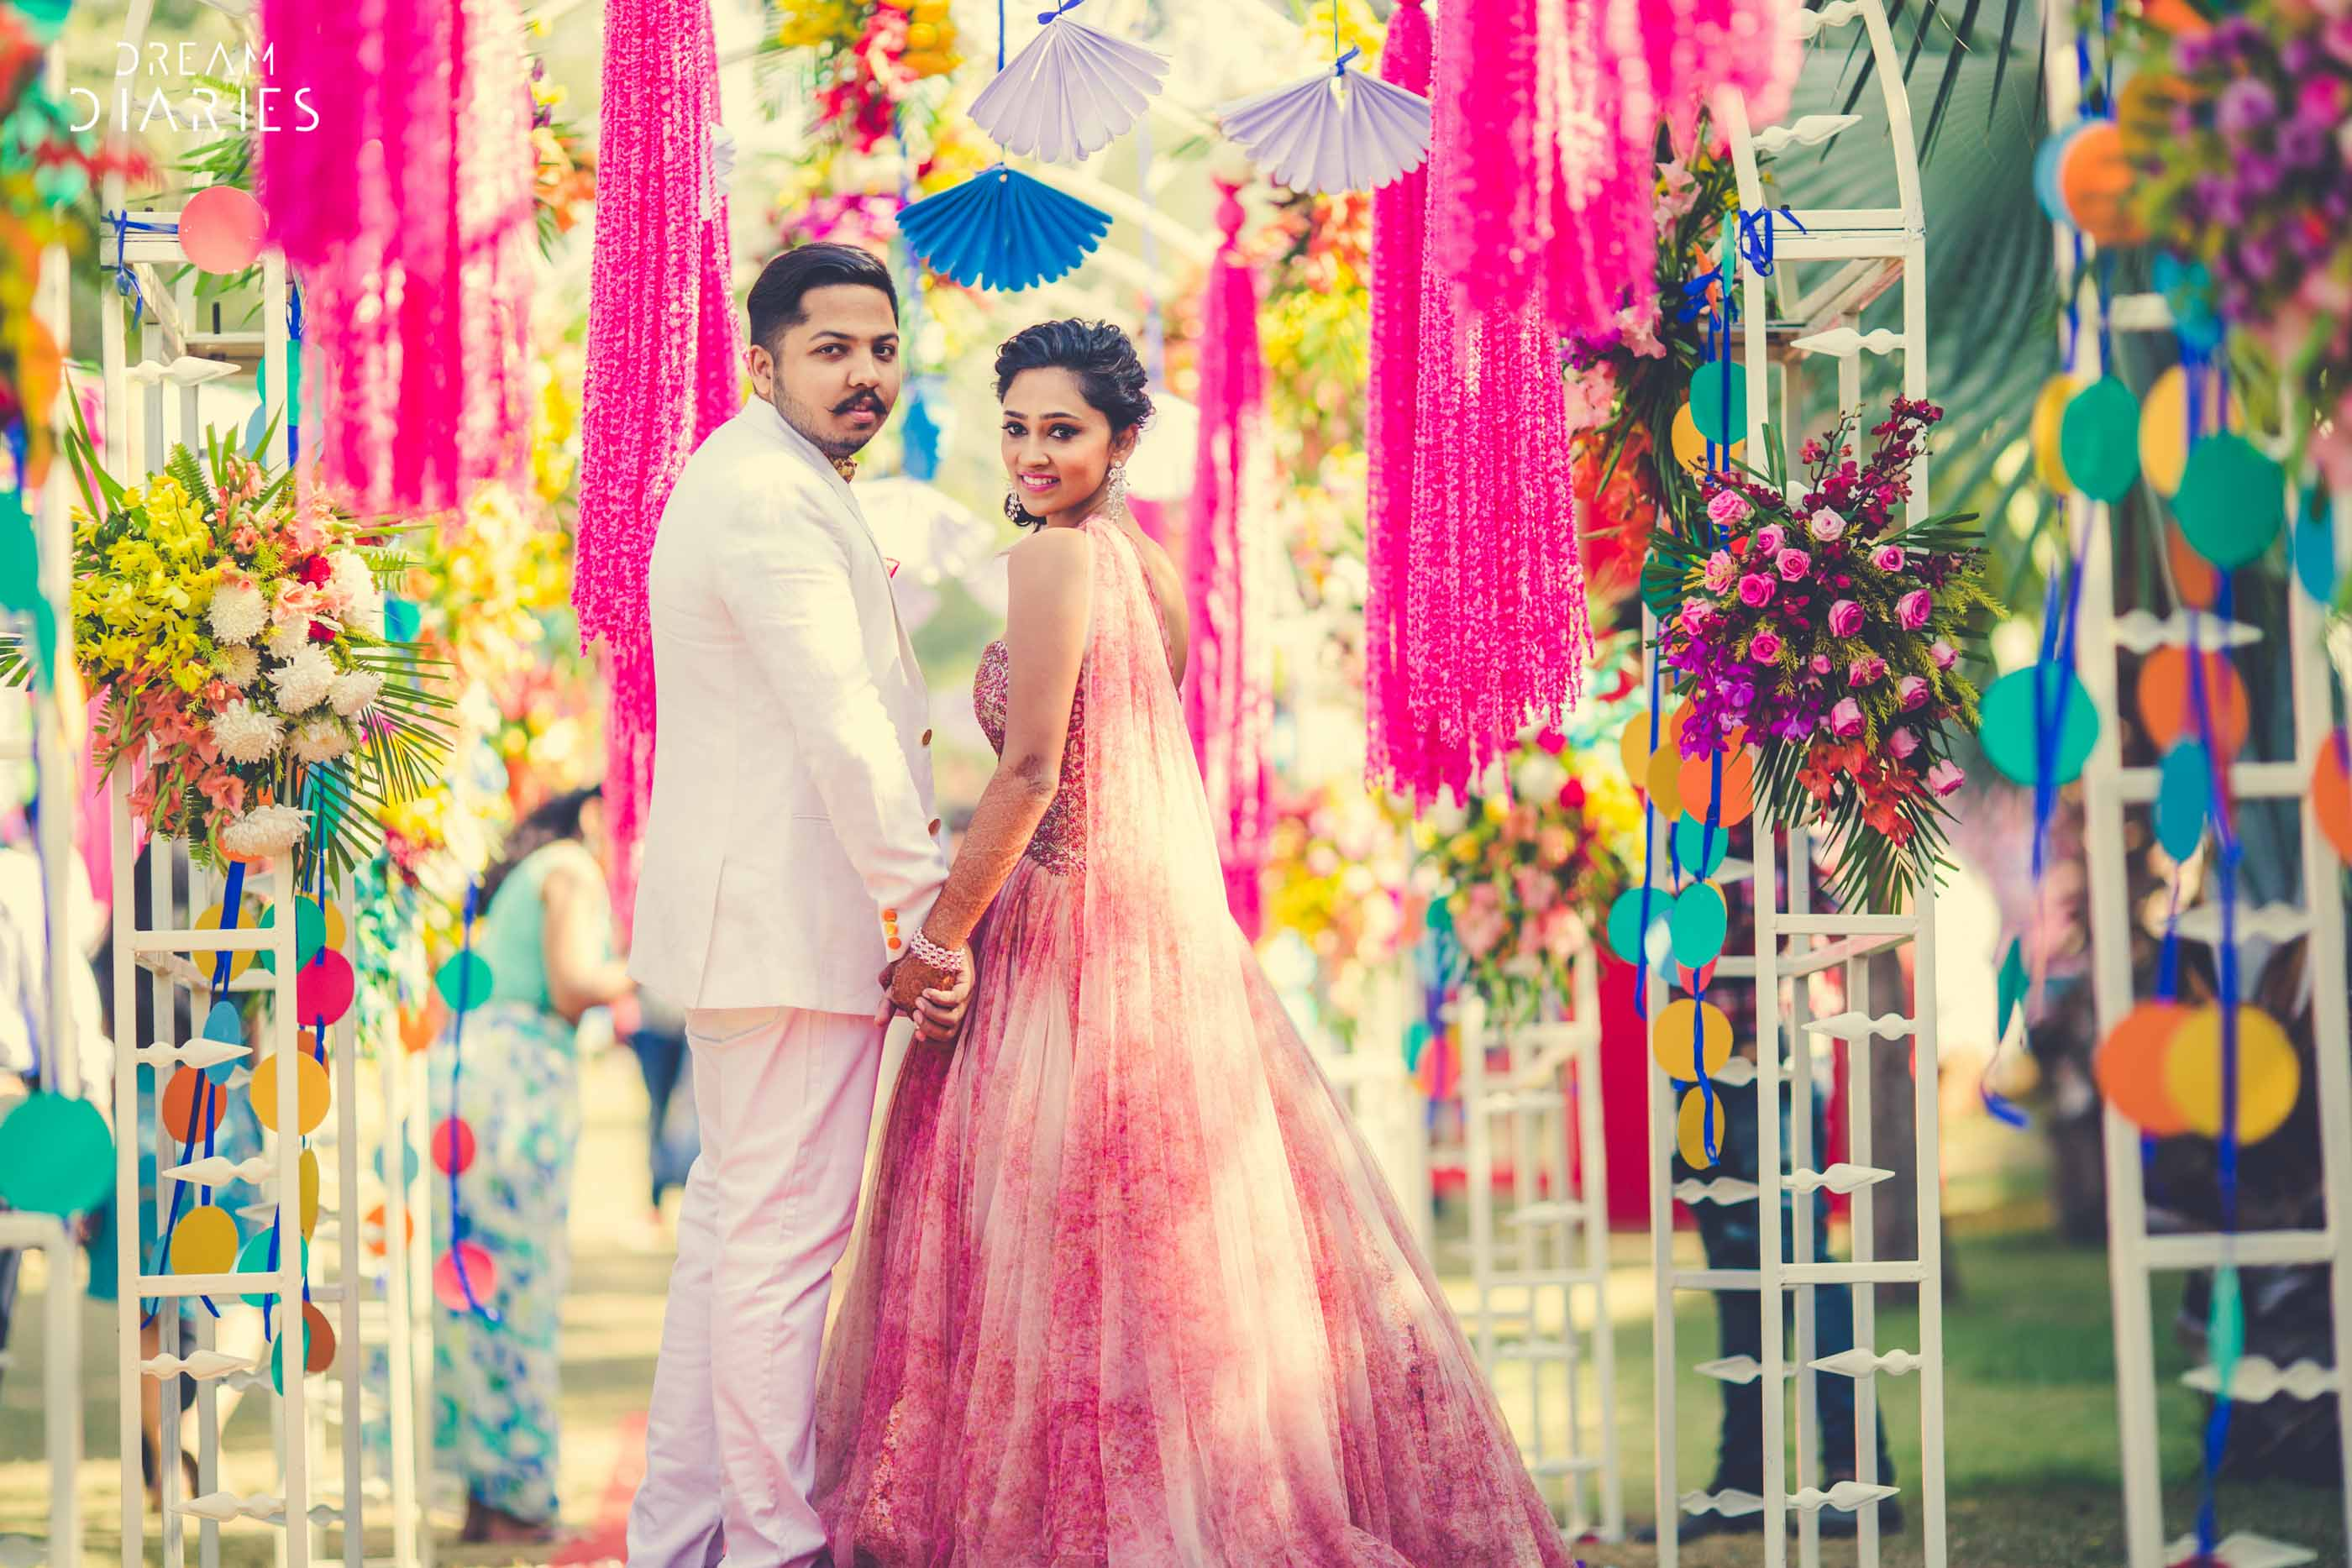 A Ram Leela Mehendi, A Firangi Fiesta, Crazy Entries, Unique Photo Ops & More By F5 Weddings!